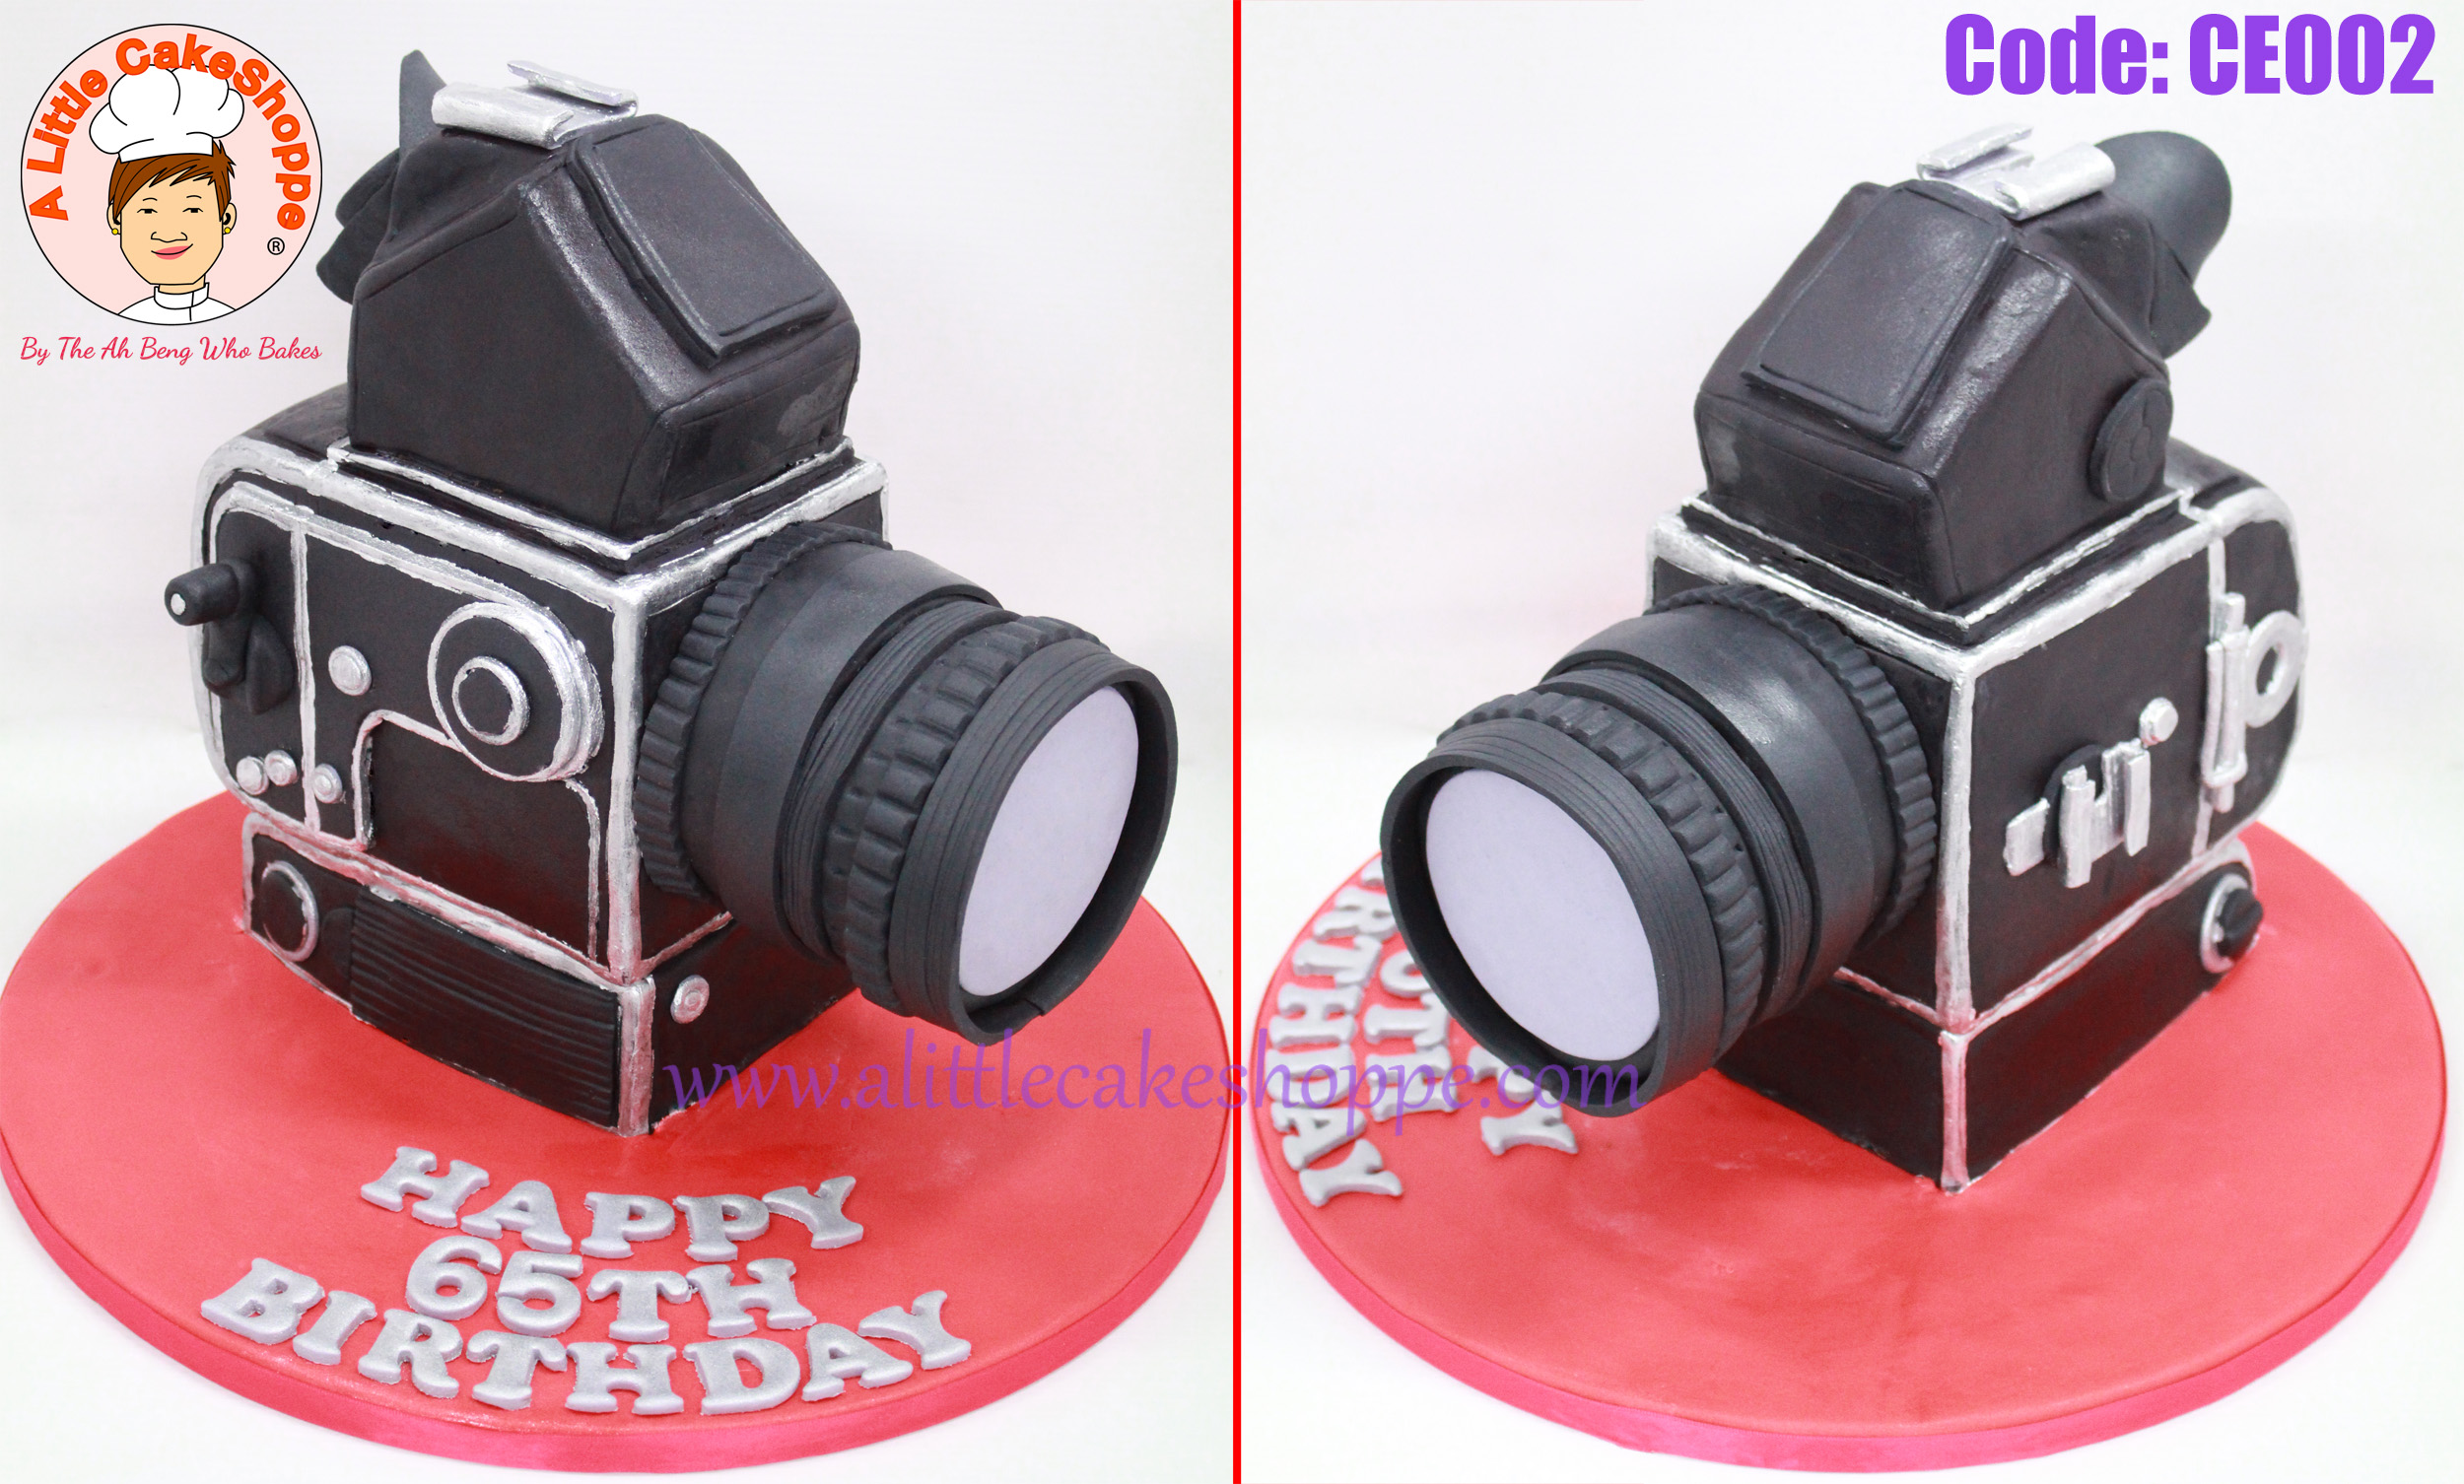 Best Customised Cake Shop Singapore custom cake 2D 3D birthday cake cupcakes desserts wedding corporate events anniversary 1st birthday 21st birthday fondant fresh cream buttercream cakes alittlecakeshoppe a little cake shoppe compliments review singapore bakers SG cake shop cakeshop ah beng who bakes camera